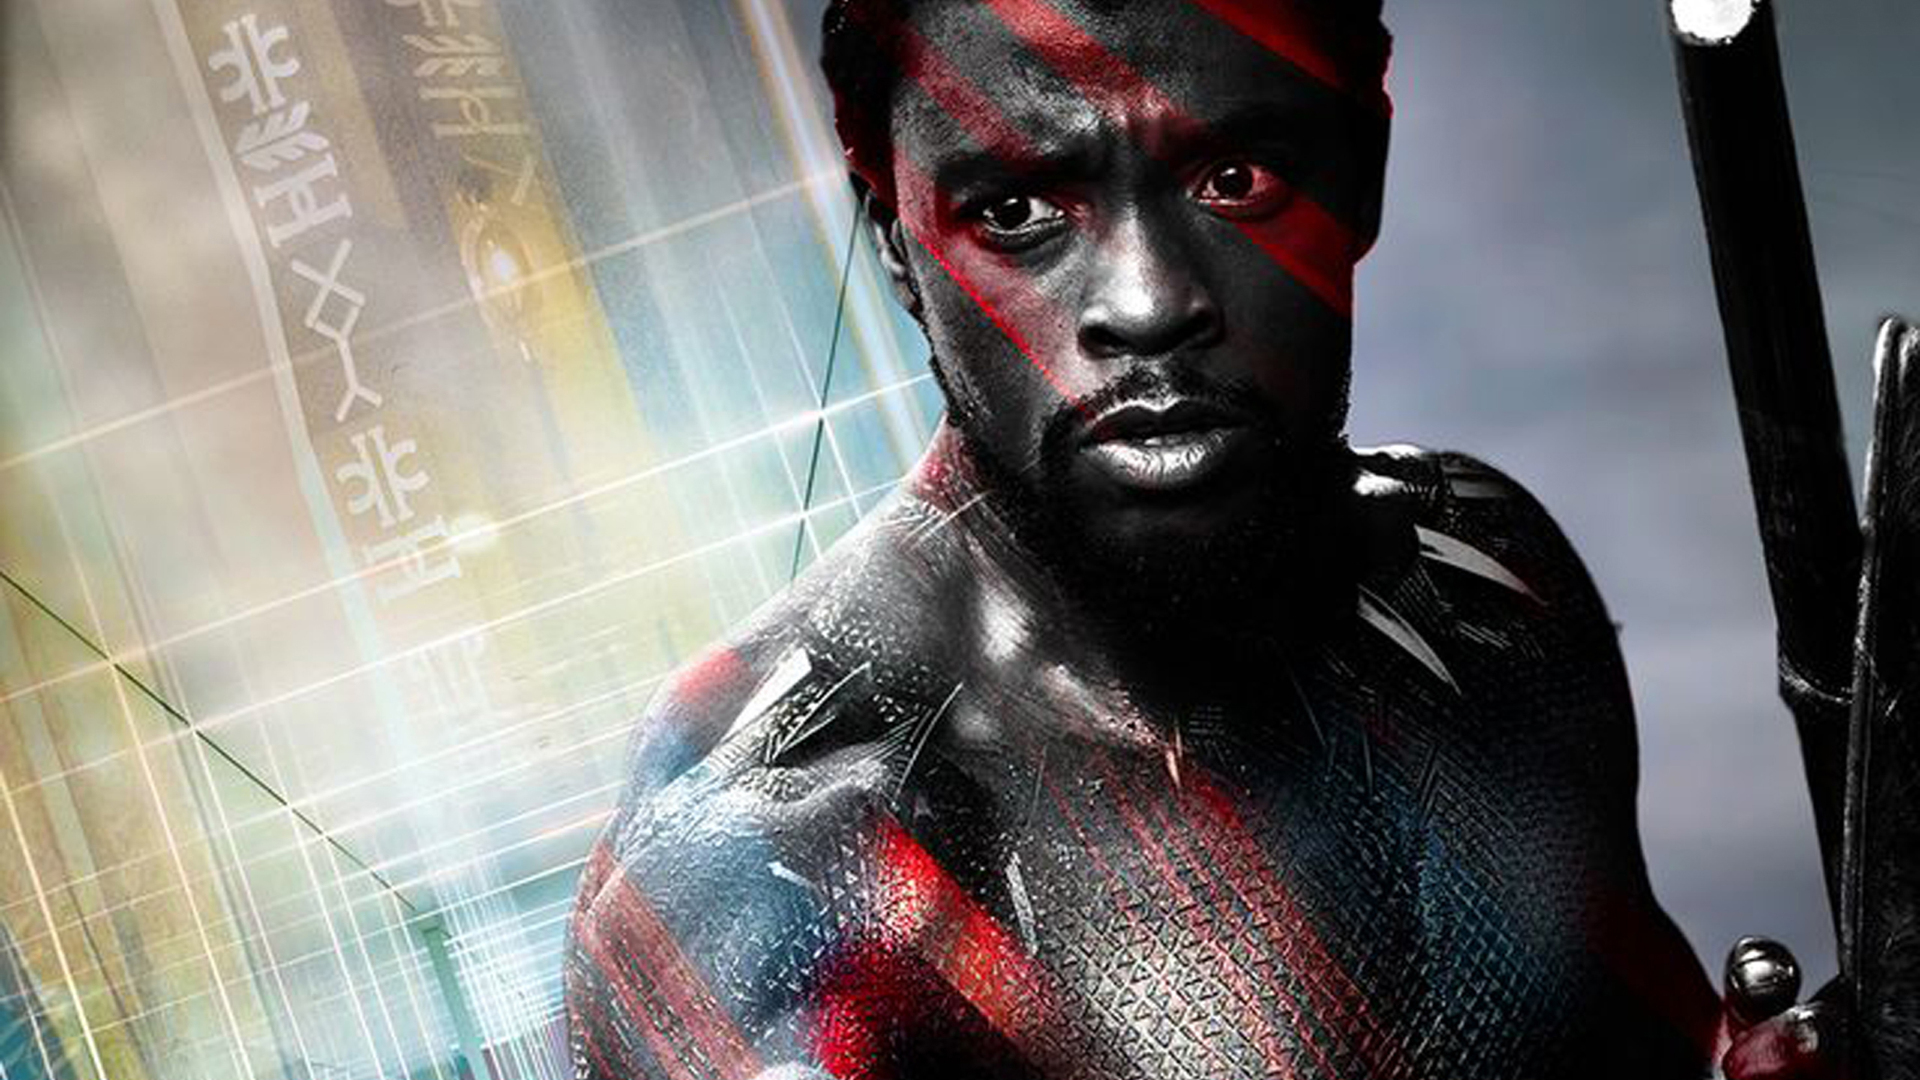 1920x1080 Chadwick Boseman As Black Panther 2018 Movie 1080p